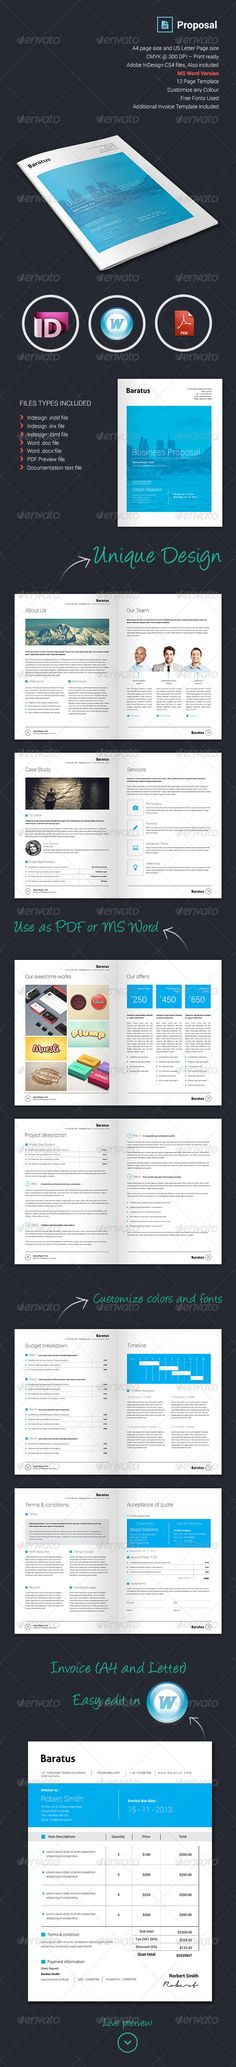 Proposal Proposals, Proposal templates and Font logo - proposal template microsoft word